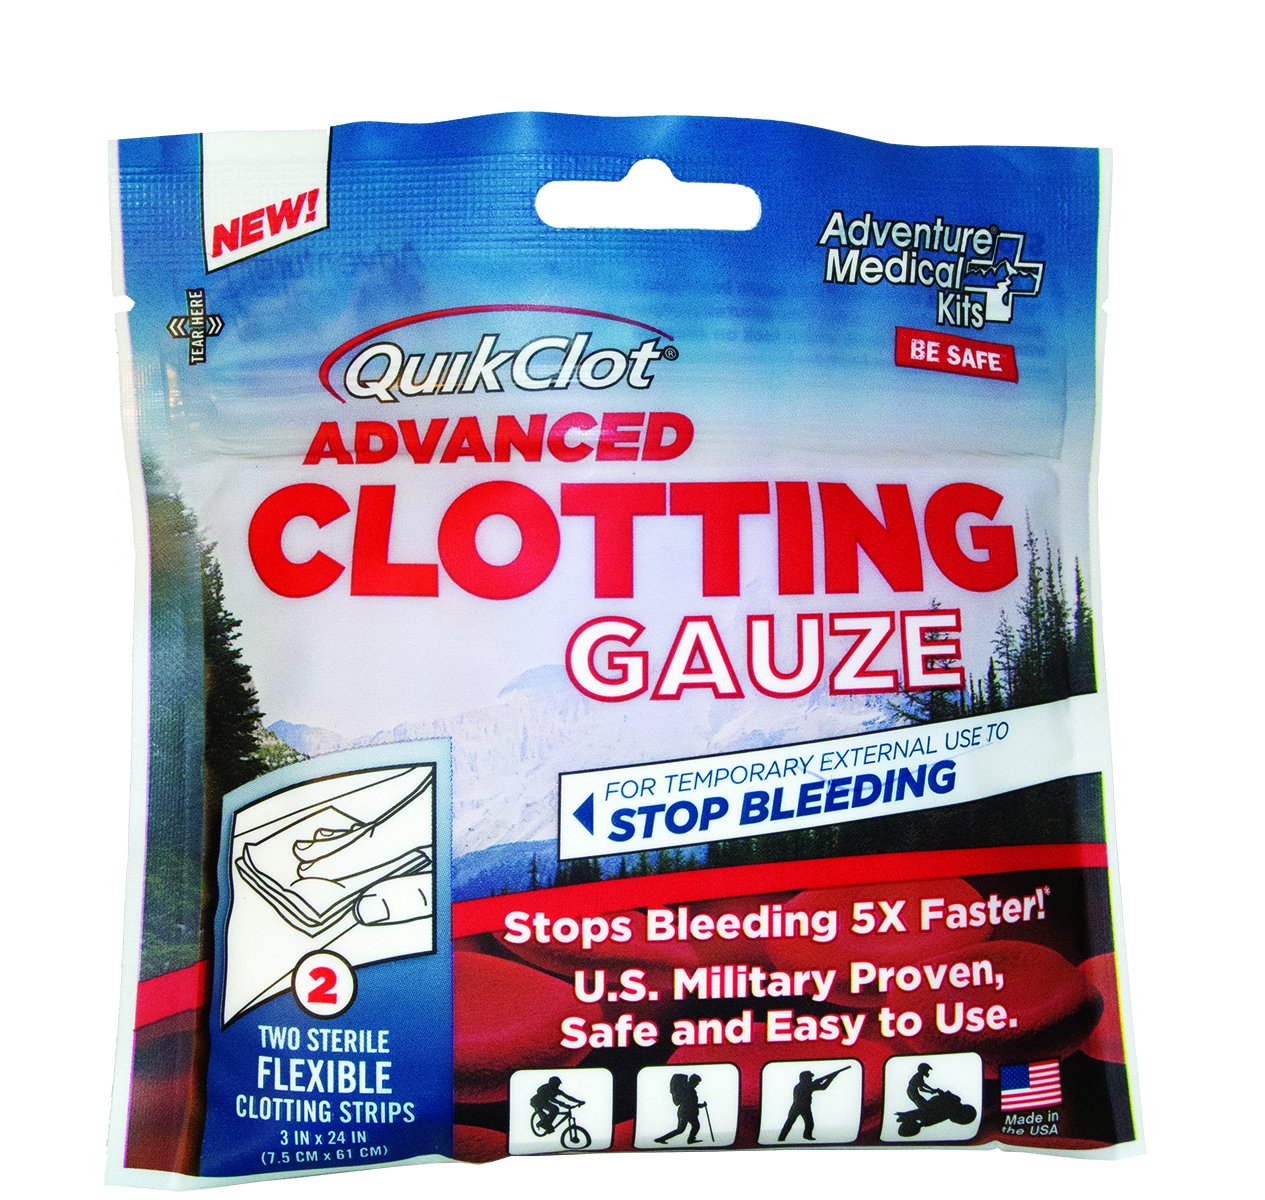 QuikClot Advanced Clotting Gauze - 3 x 24 in (Pack of 2) by QuikClot